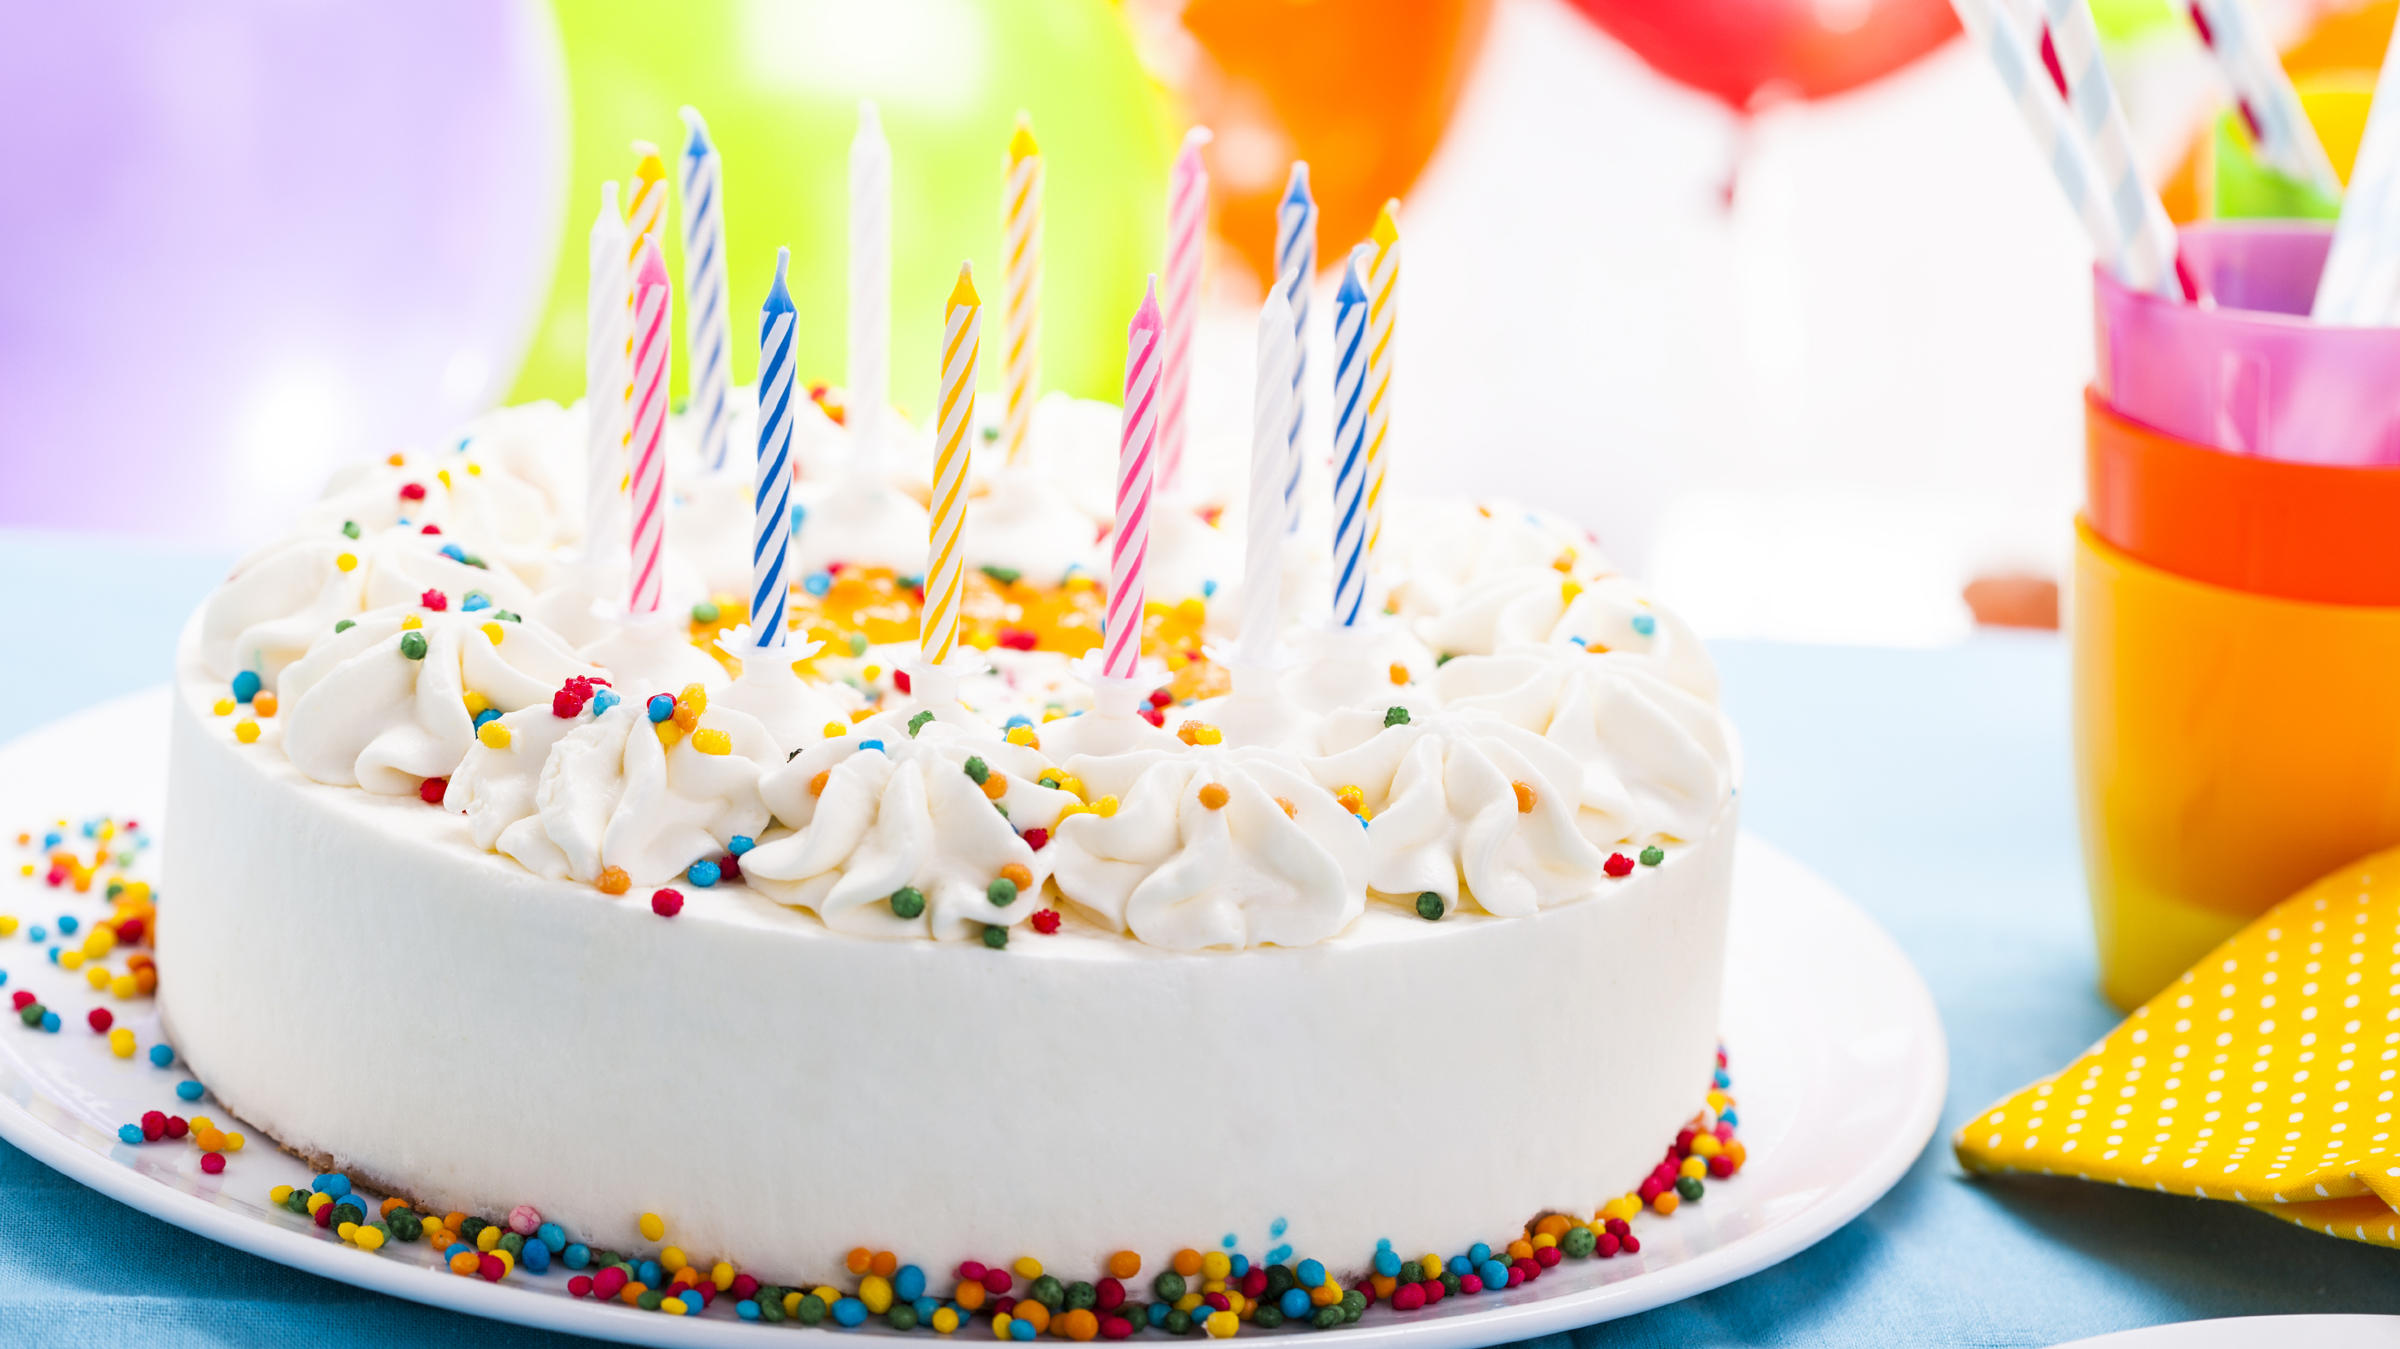 Surprising Tom Cotton Eats Birthday Cake Almost Every Day Kera News Funny Birthday Cards Online Overcheapnameinfo